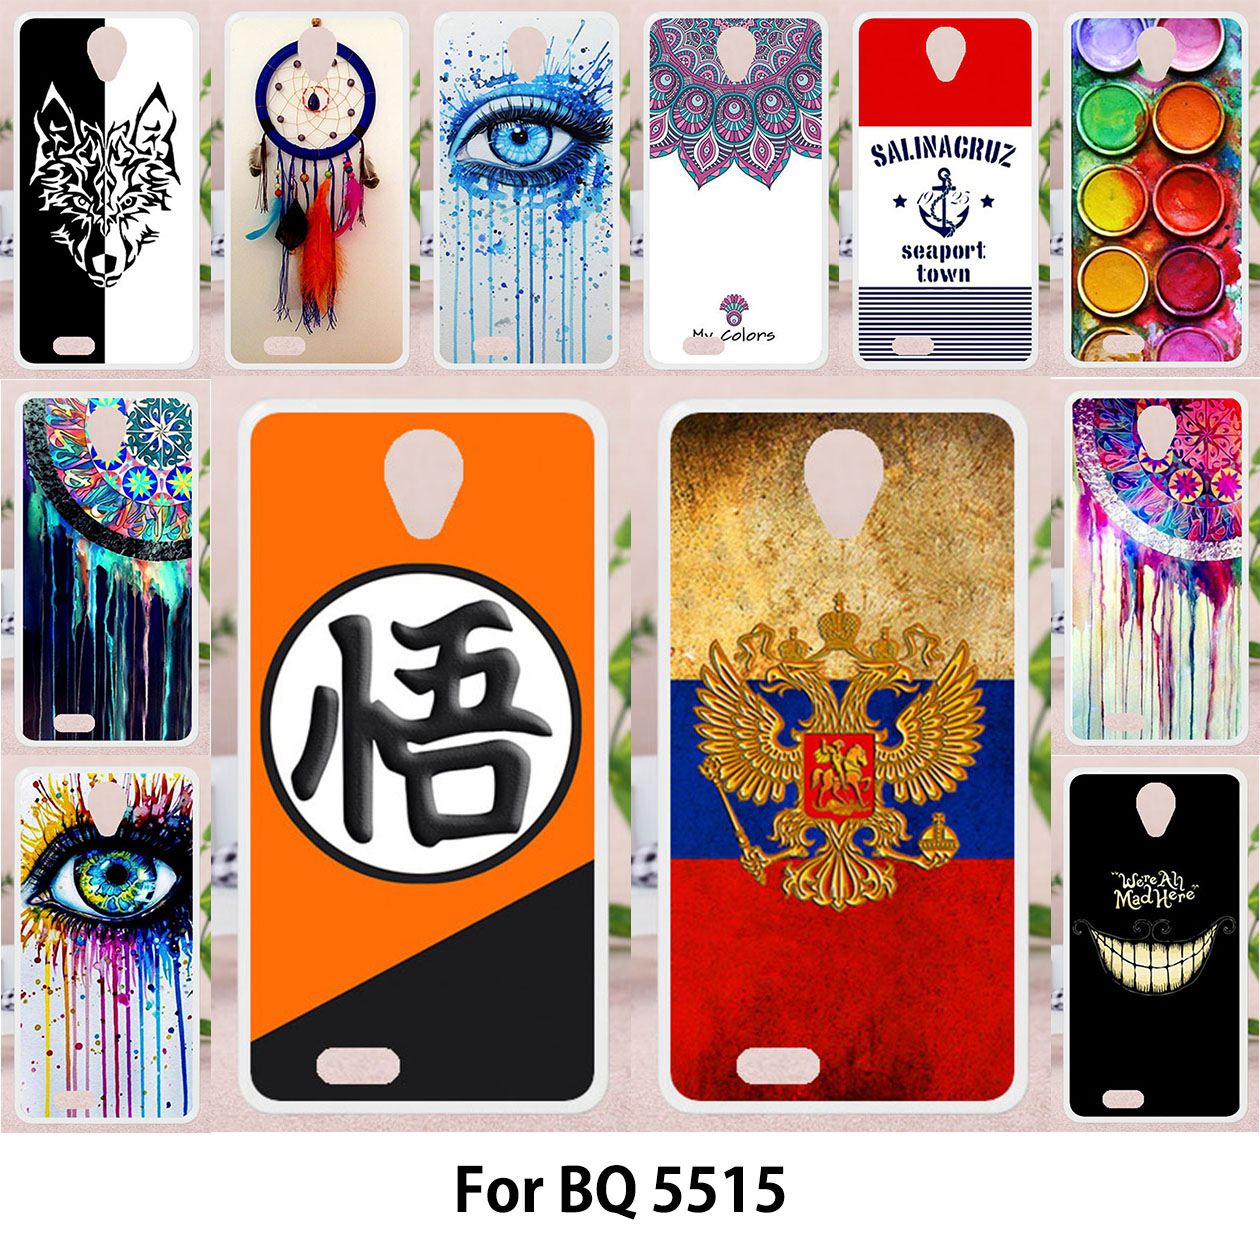 TAOYUNXI For BQ BQ-5515 Wide BQ Mobile BQS-5515 Wide BQS 5515 Case Silicon TPU Soft Cover Painting Phone Cases Fashion Patterns